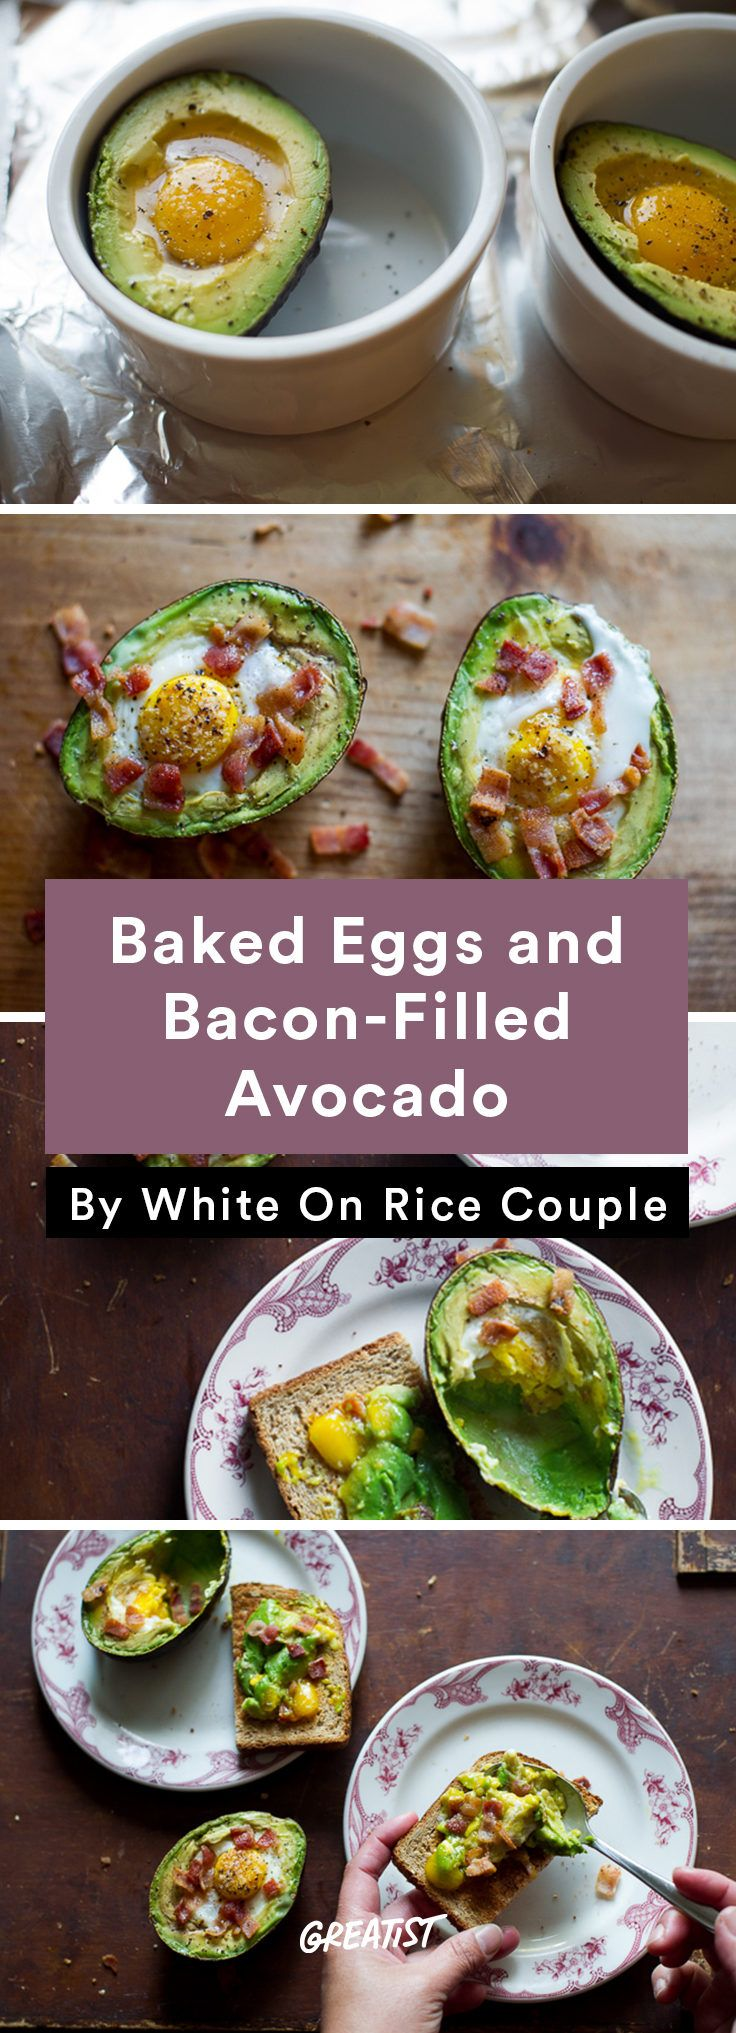 tuffed avocados are the easiest way to pack one bite with as many good-for-you ingredients as possible, without sacrificing flavor. Whether you're looking for a gateway vessel for getting comfy around unique combos (like Thai tuna or chickpea and Tamari salad) or in the market for a simple avocado toast upgrade, these 11 recipes are ripe for the making. Forget toast—it's time to stuff your favorite food. #healthy #recipe #stuffedavocado #avocado…